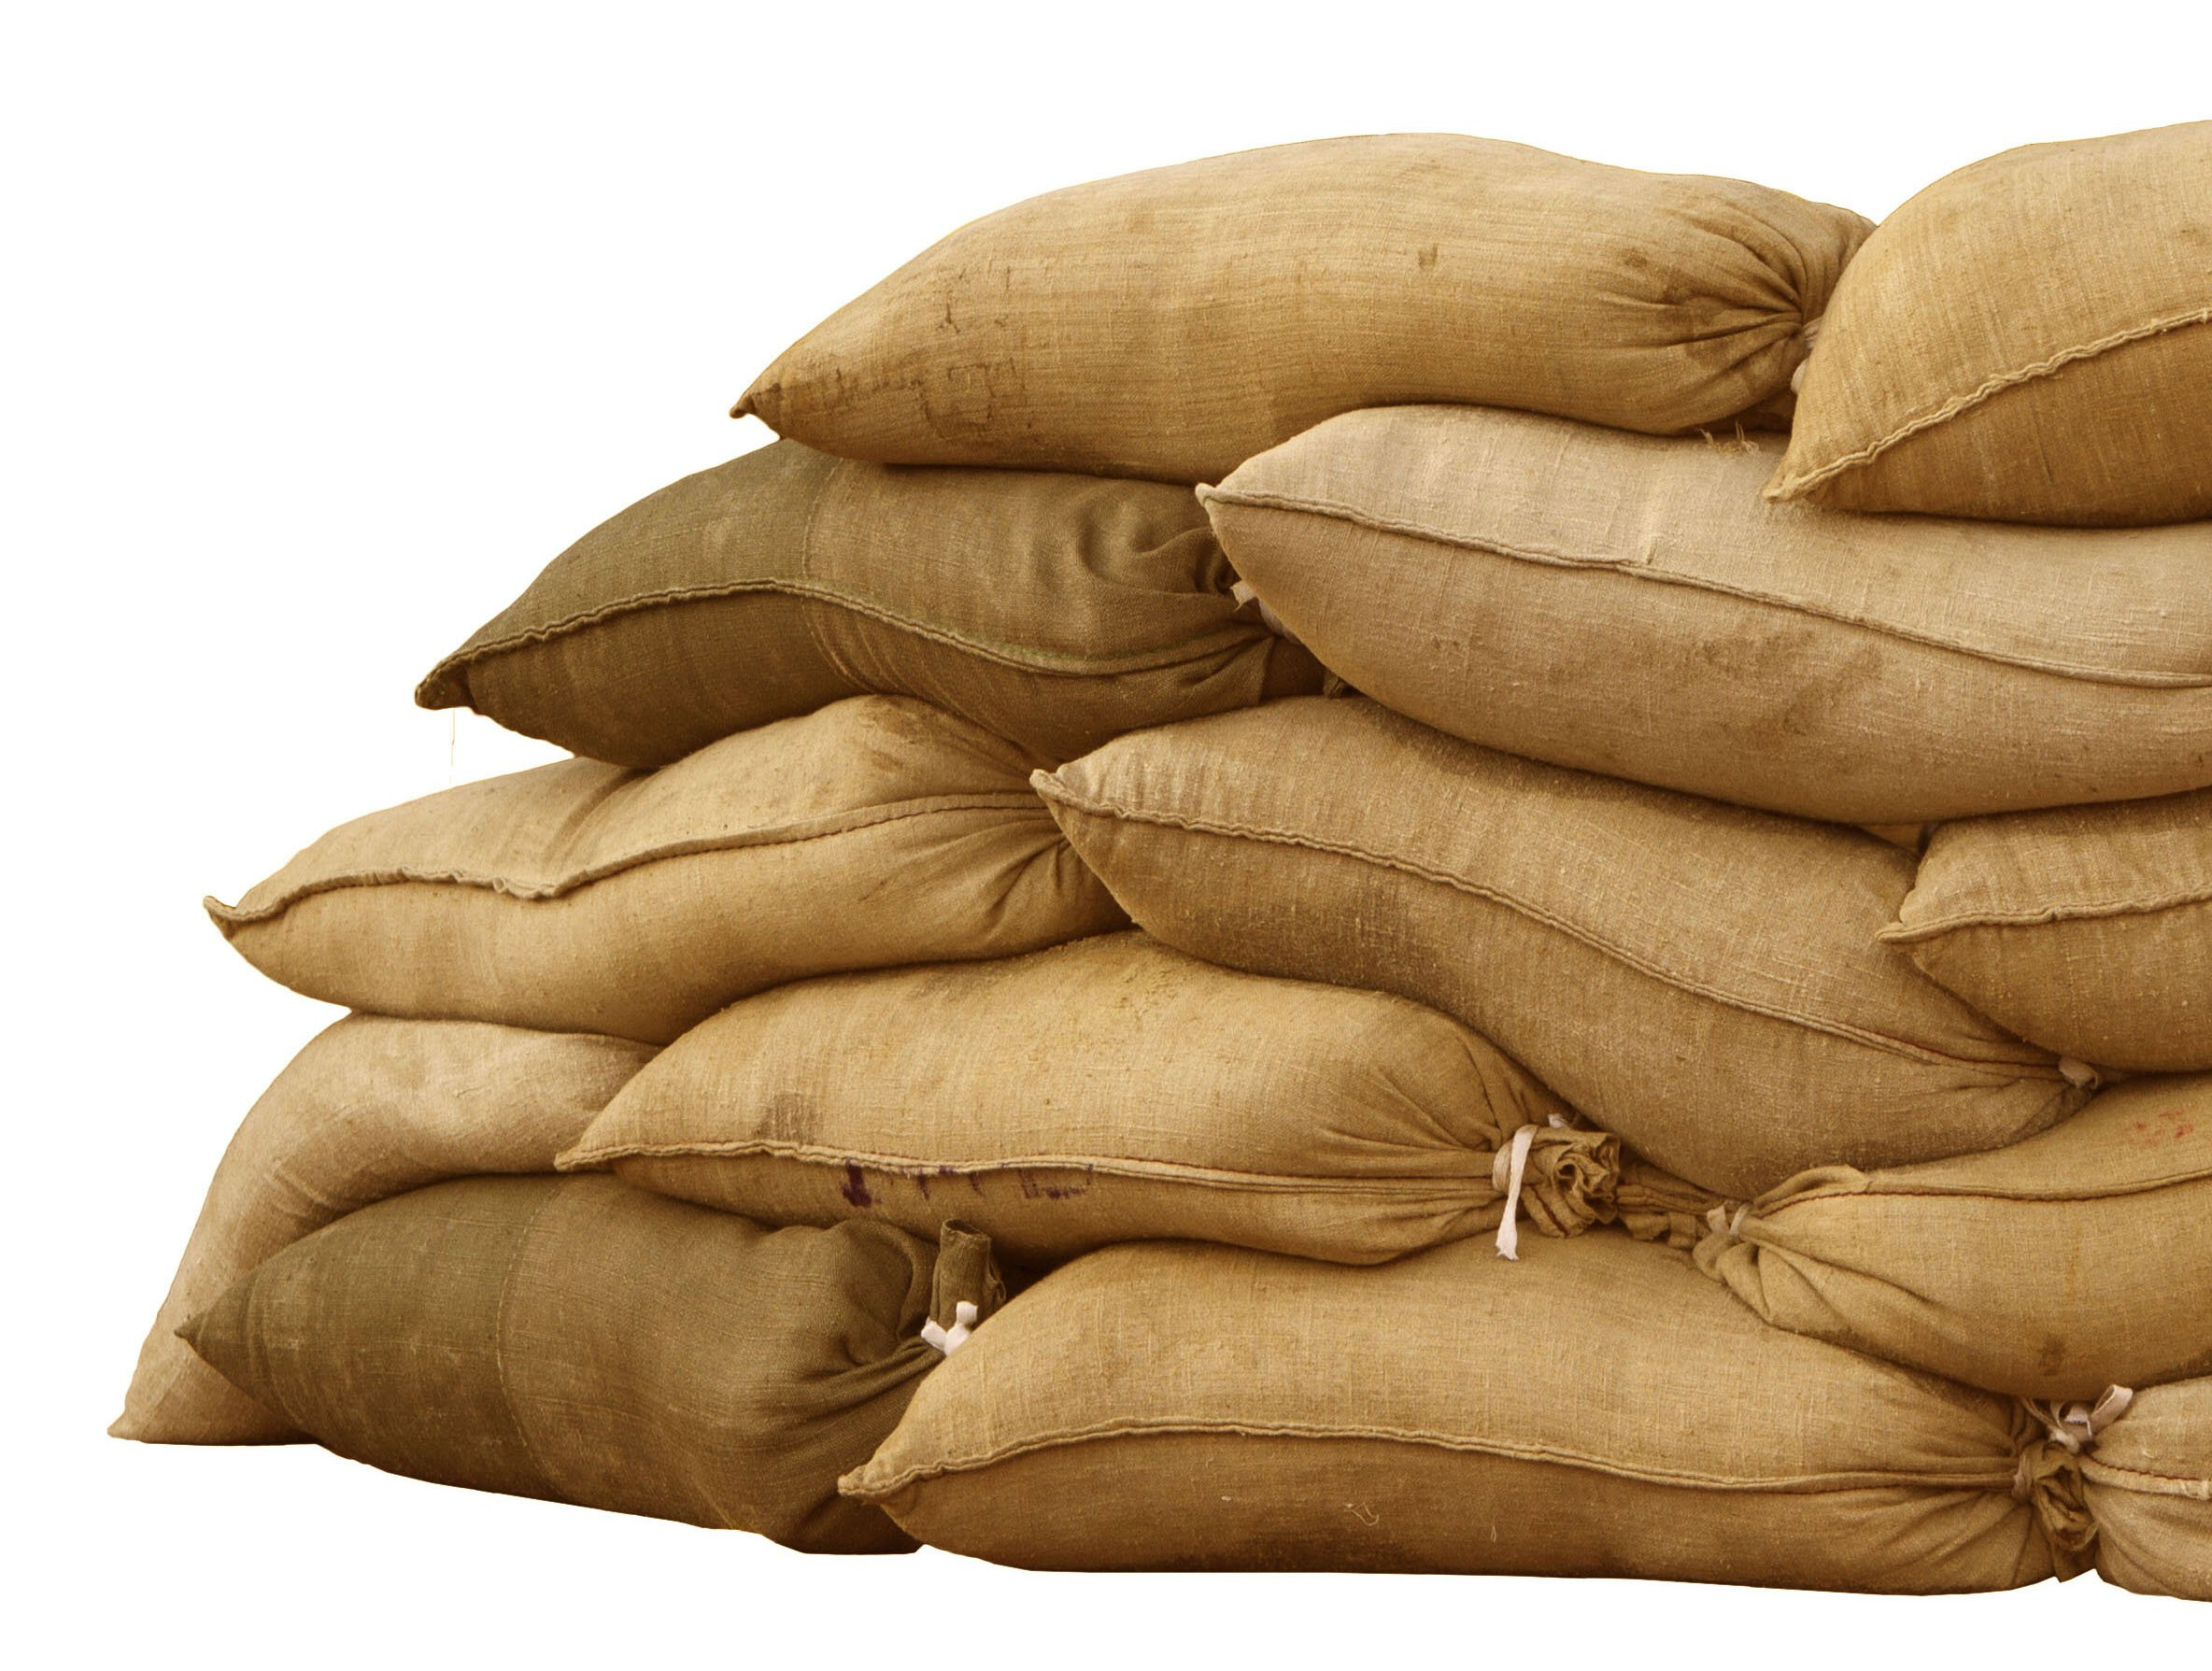 Sandbaggy Burlap Sand Bag - Size: 14'' x 26'' - Sandbags - 100% Biodegradable - Sandbags for Flooding - Sand Bag - Flood Water Barrier - Water Curb - Tent Sandbags - Store Bags (1000 Bags) by Sandbaggy